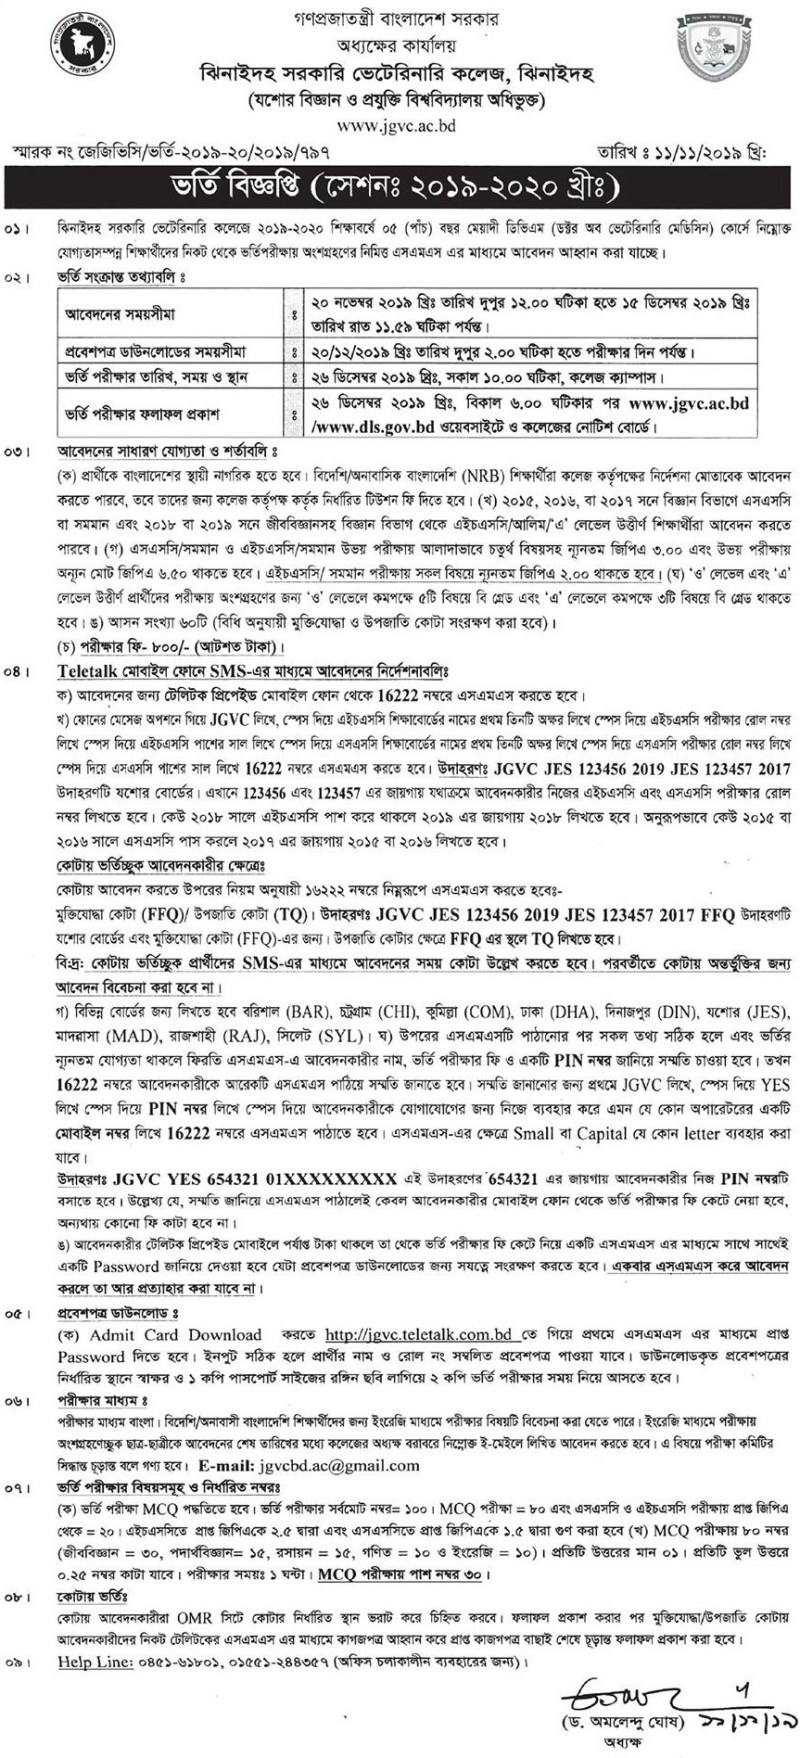 Jhenaidah Veterinary Admission Circular 2019